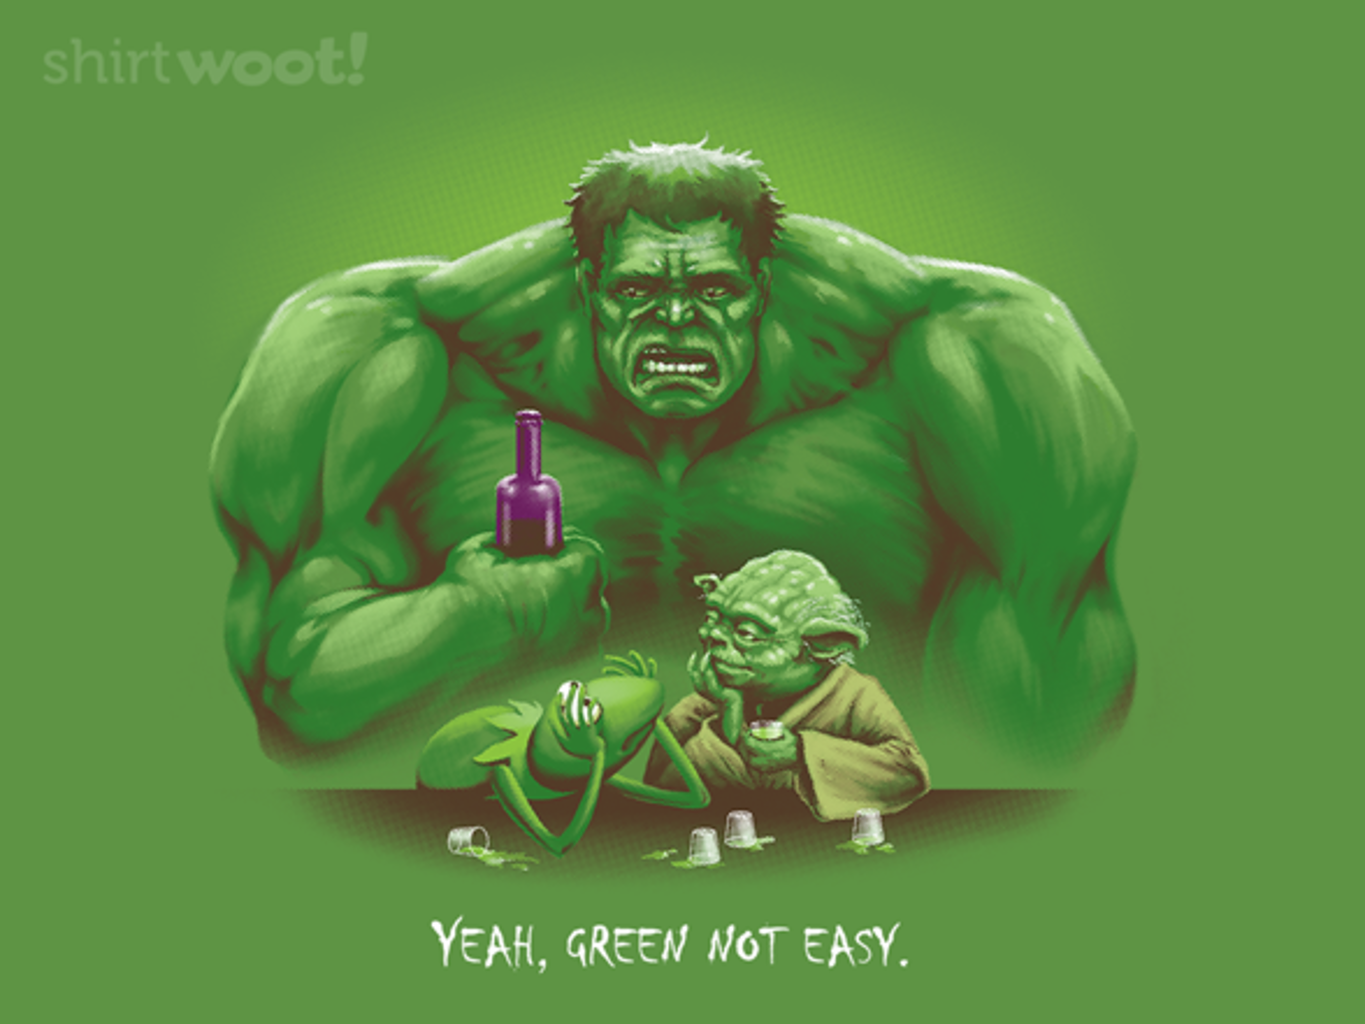 Woot!: Green Not Easy